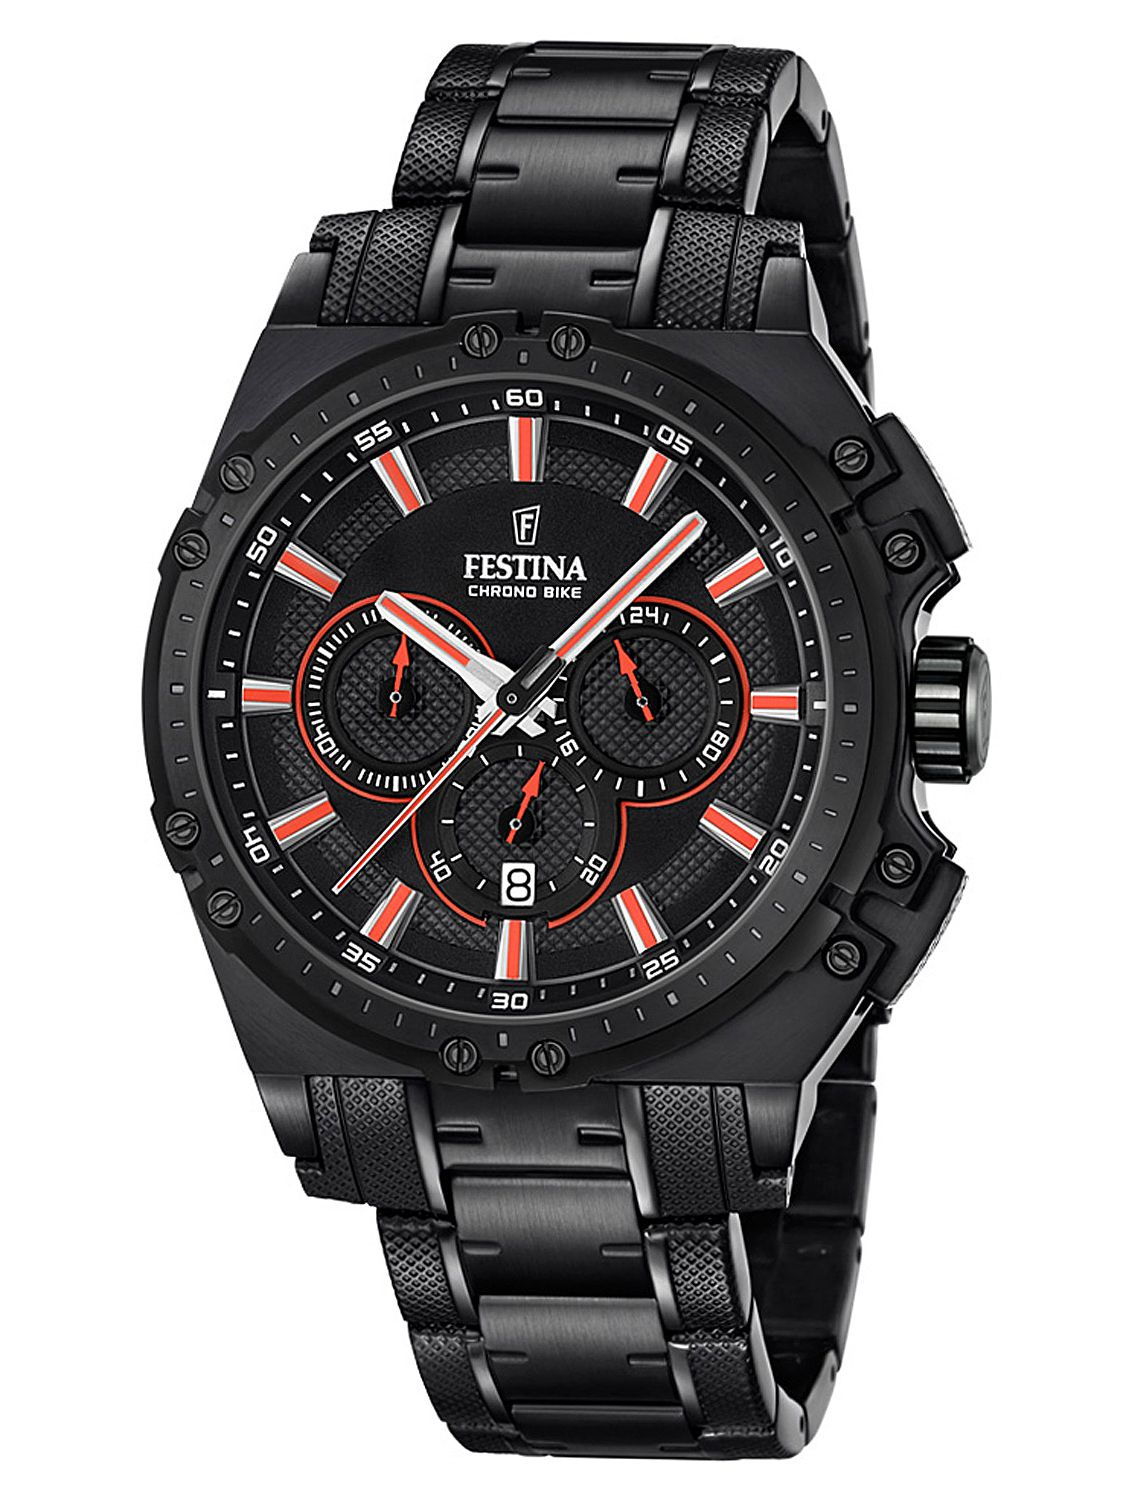 Festina F16969/4 Chrono Bike Chronograph Herrenuhr